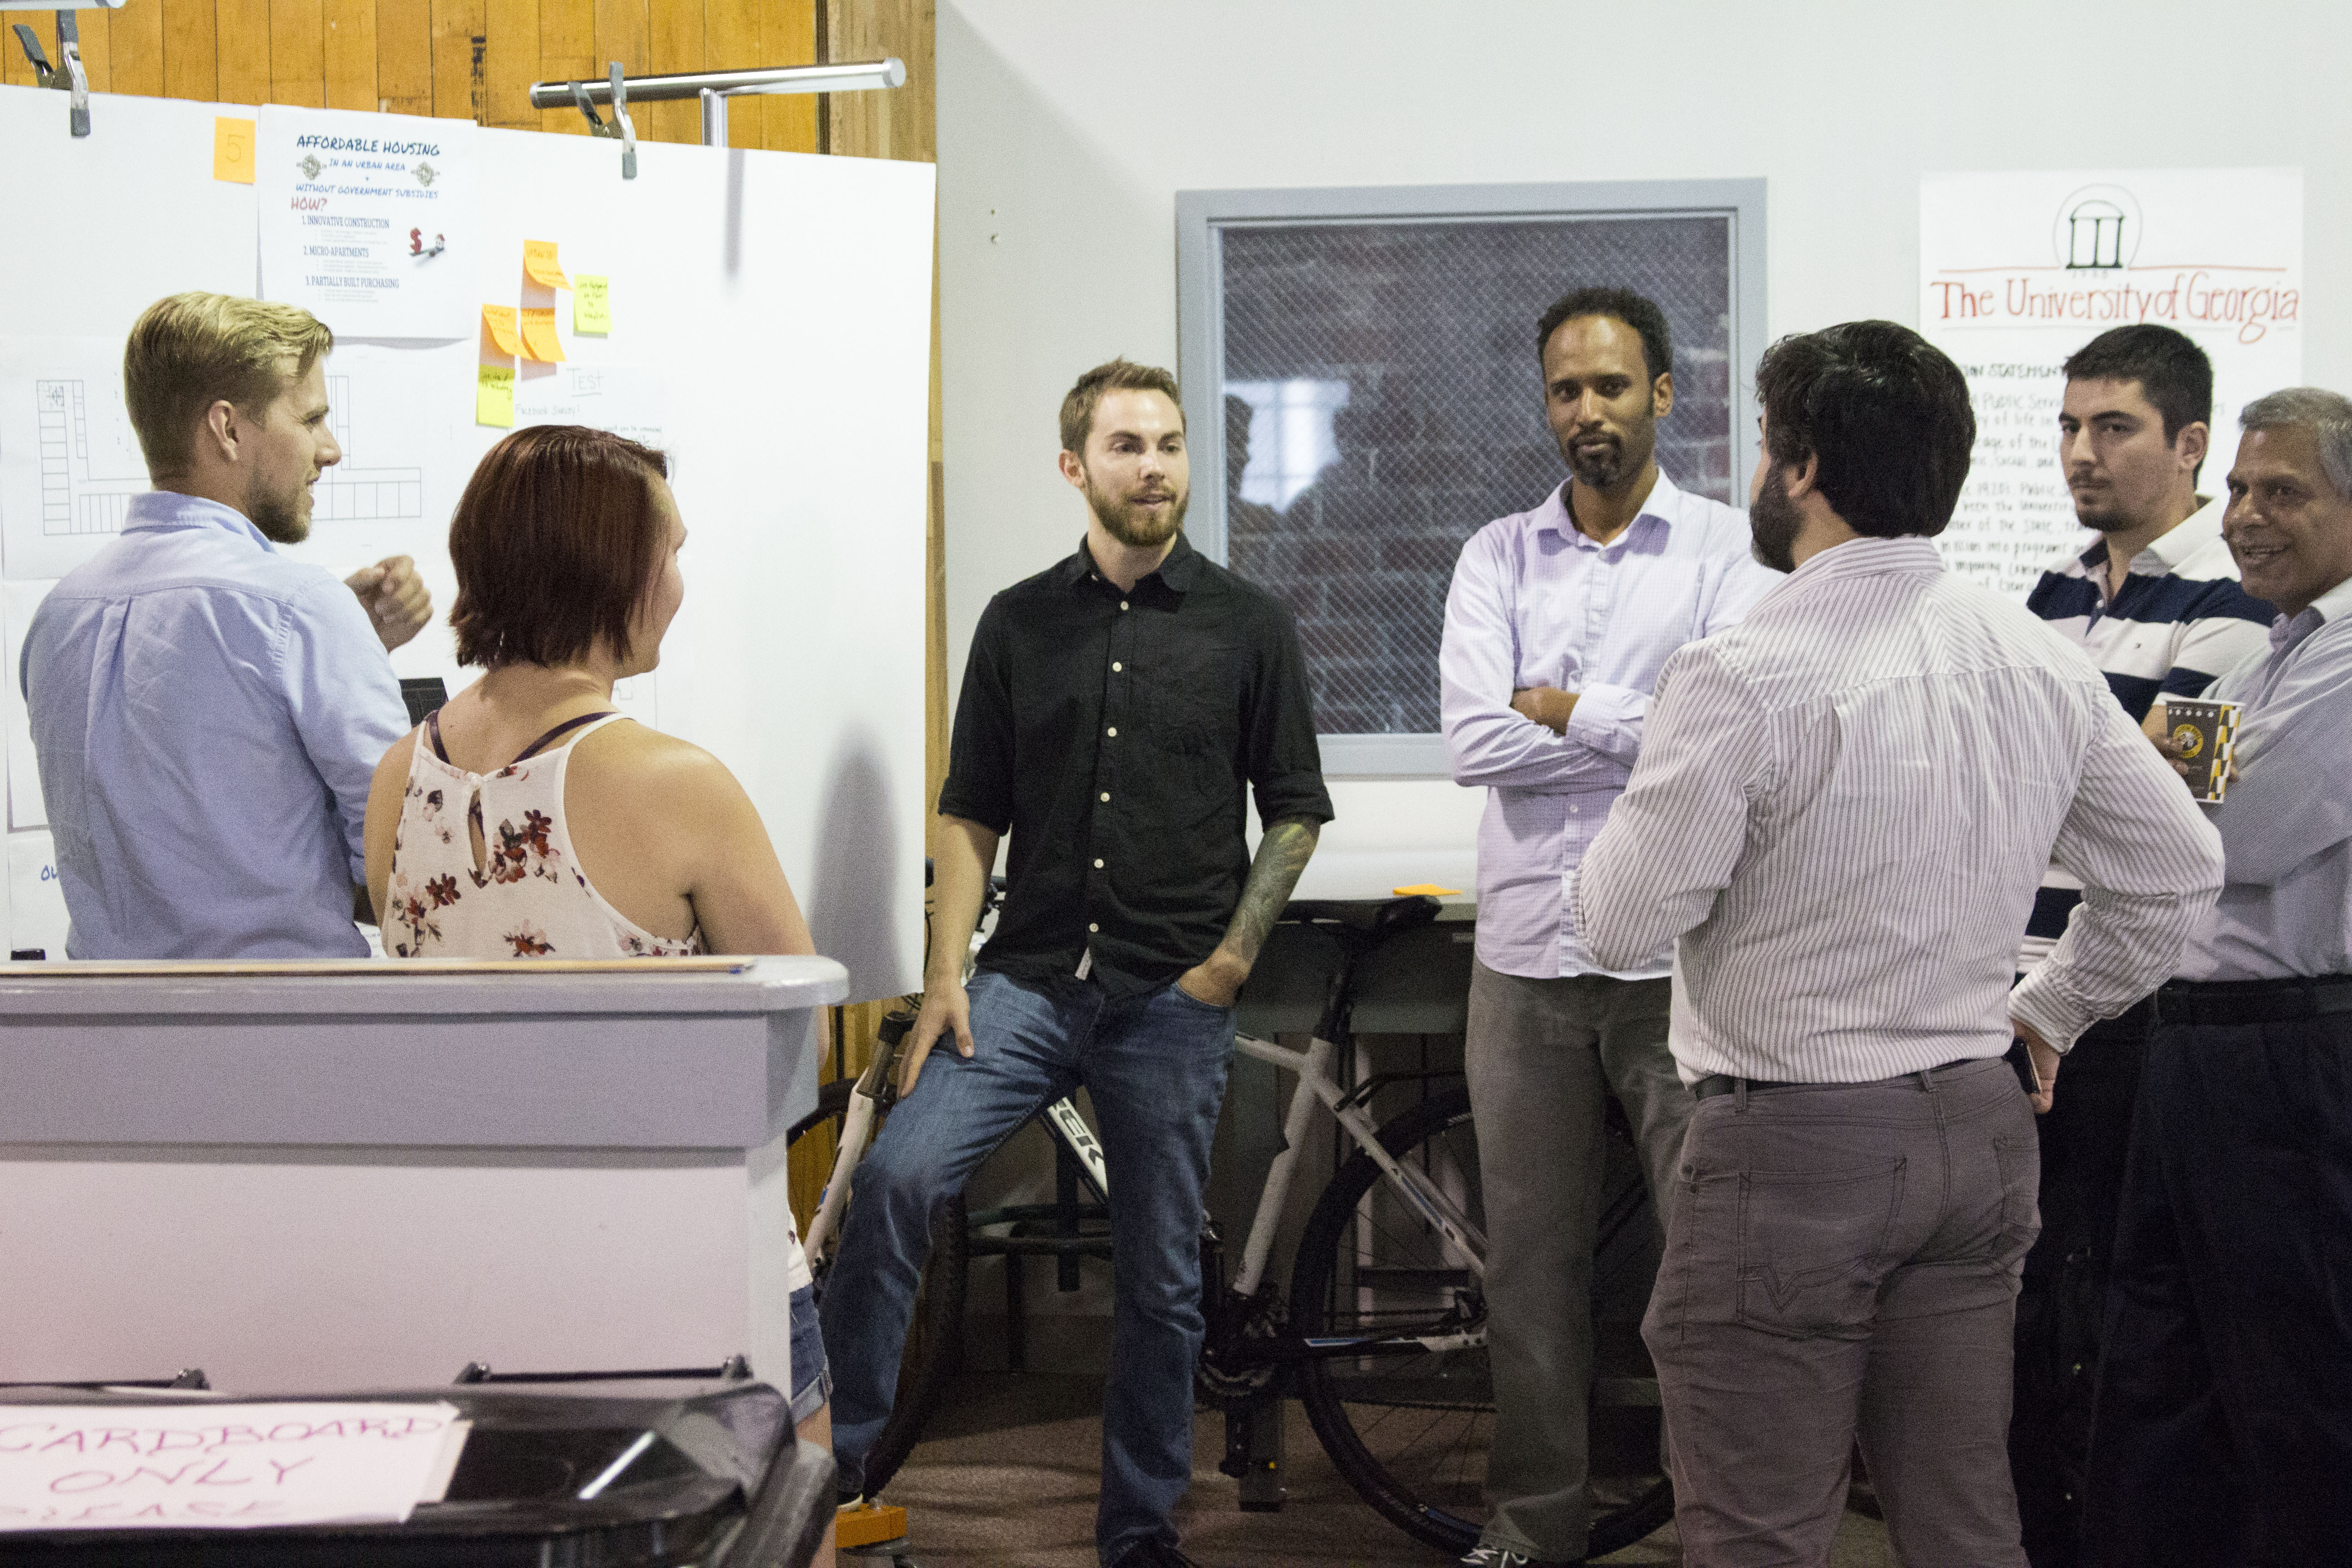 University of Georgia graduate students discuss their entrepreneurial projects during a Creative Design Thinking class at Broad Street Studio One in Athens last year. UGA is offering a new Graduate Certificate in Entrepreneurship, which is available to all UGA graduate students beginning this fall.